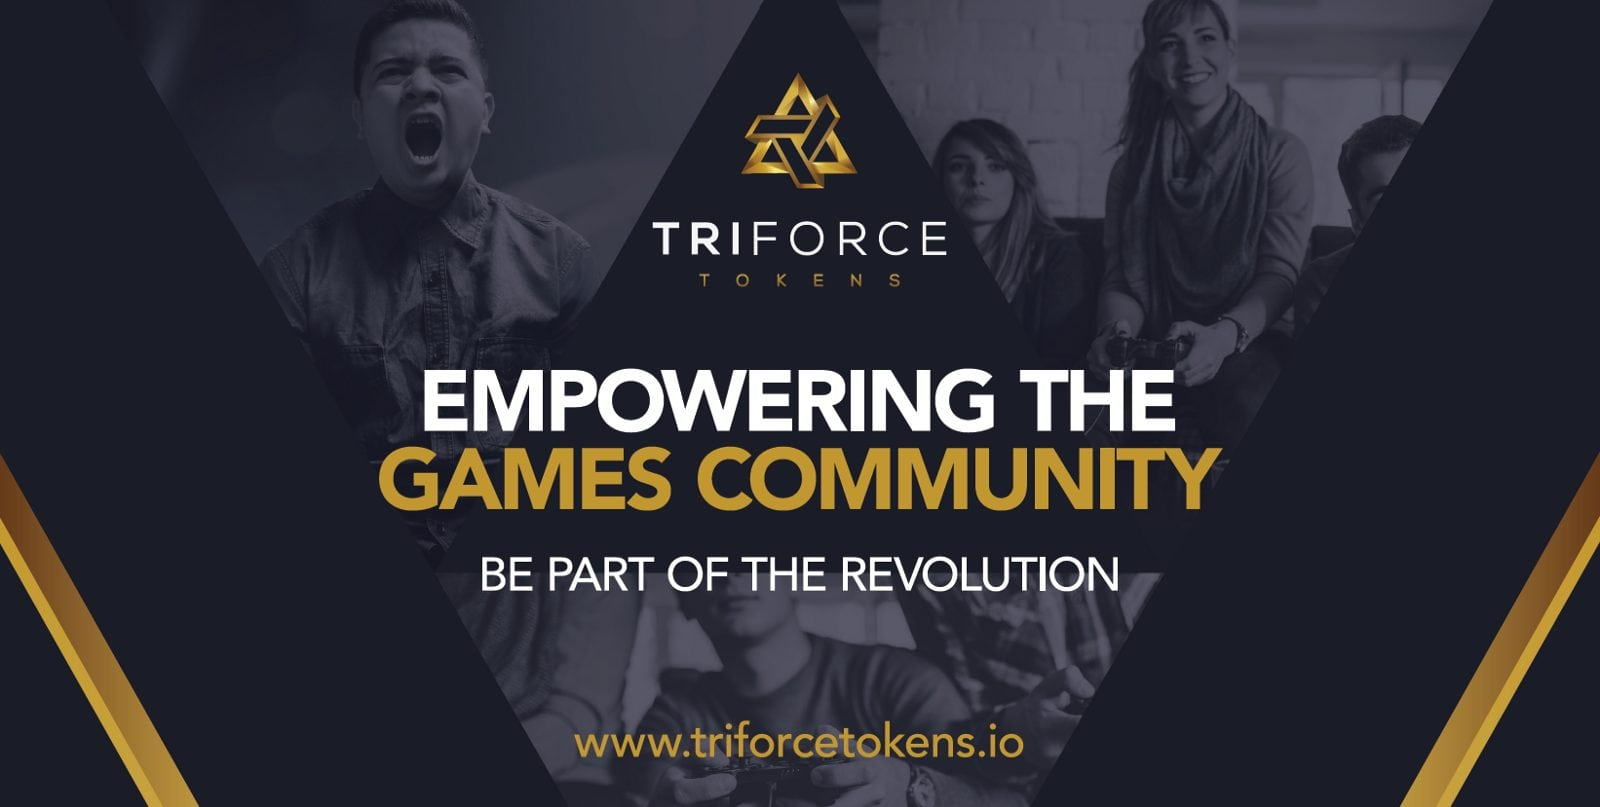 1 CAjPPo8f9Jjhd 2Xh qBnA - Award Winner Gaming Startup TriForce Tokens Is Gearing Up For Its Final Token Offering, Eliminating Gaming Industry's Shortcomings